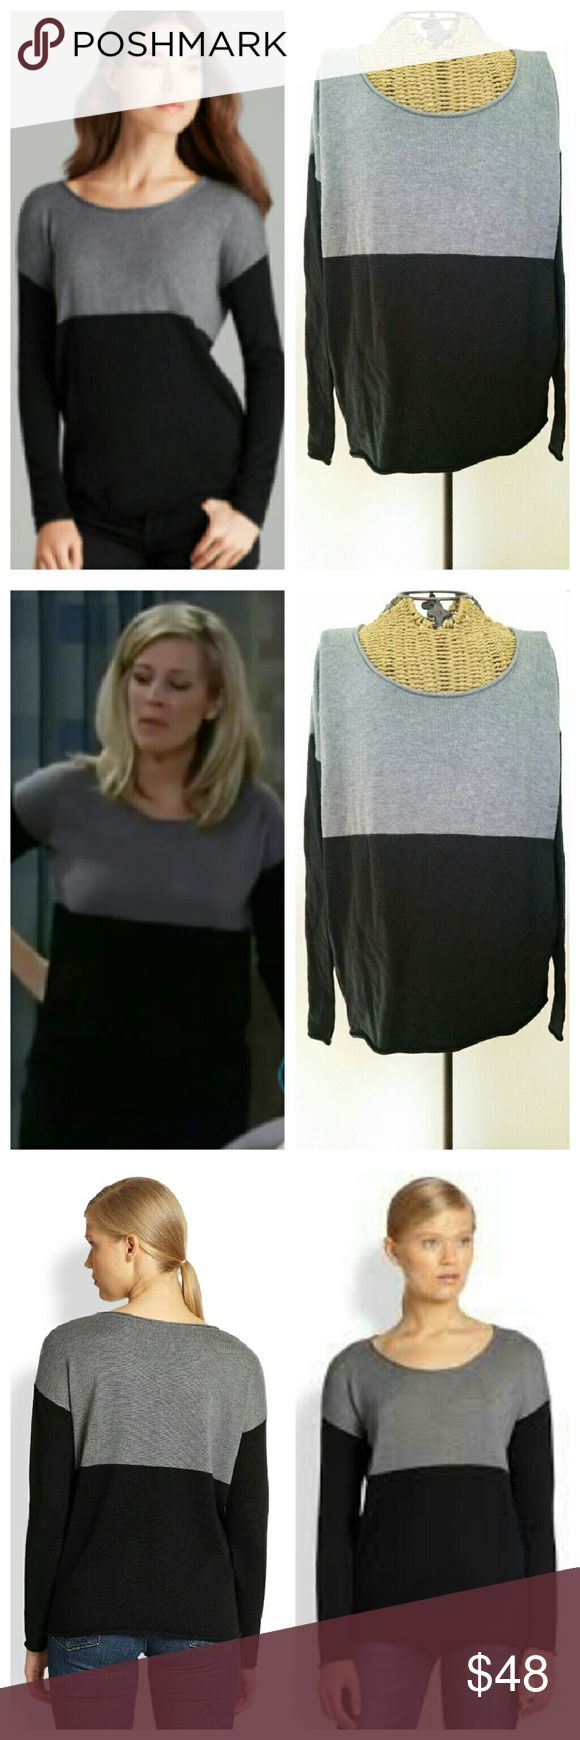 "SPLENDID colorblock cashmere blend sweater Beautiful sweater by Splendid  As seen on GH soap star  Sz L Viscose nylon poly cashmere...soft knit Rolled edge Scoop neckline Dropped shoulders Grey black color block Underarm to underarm 24"" Underarm to sleeve end 18^"" Top of shoulder to hem 26"" Excellent condition Splendid Sweaters Crew & Scoop Necks"